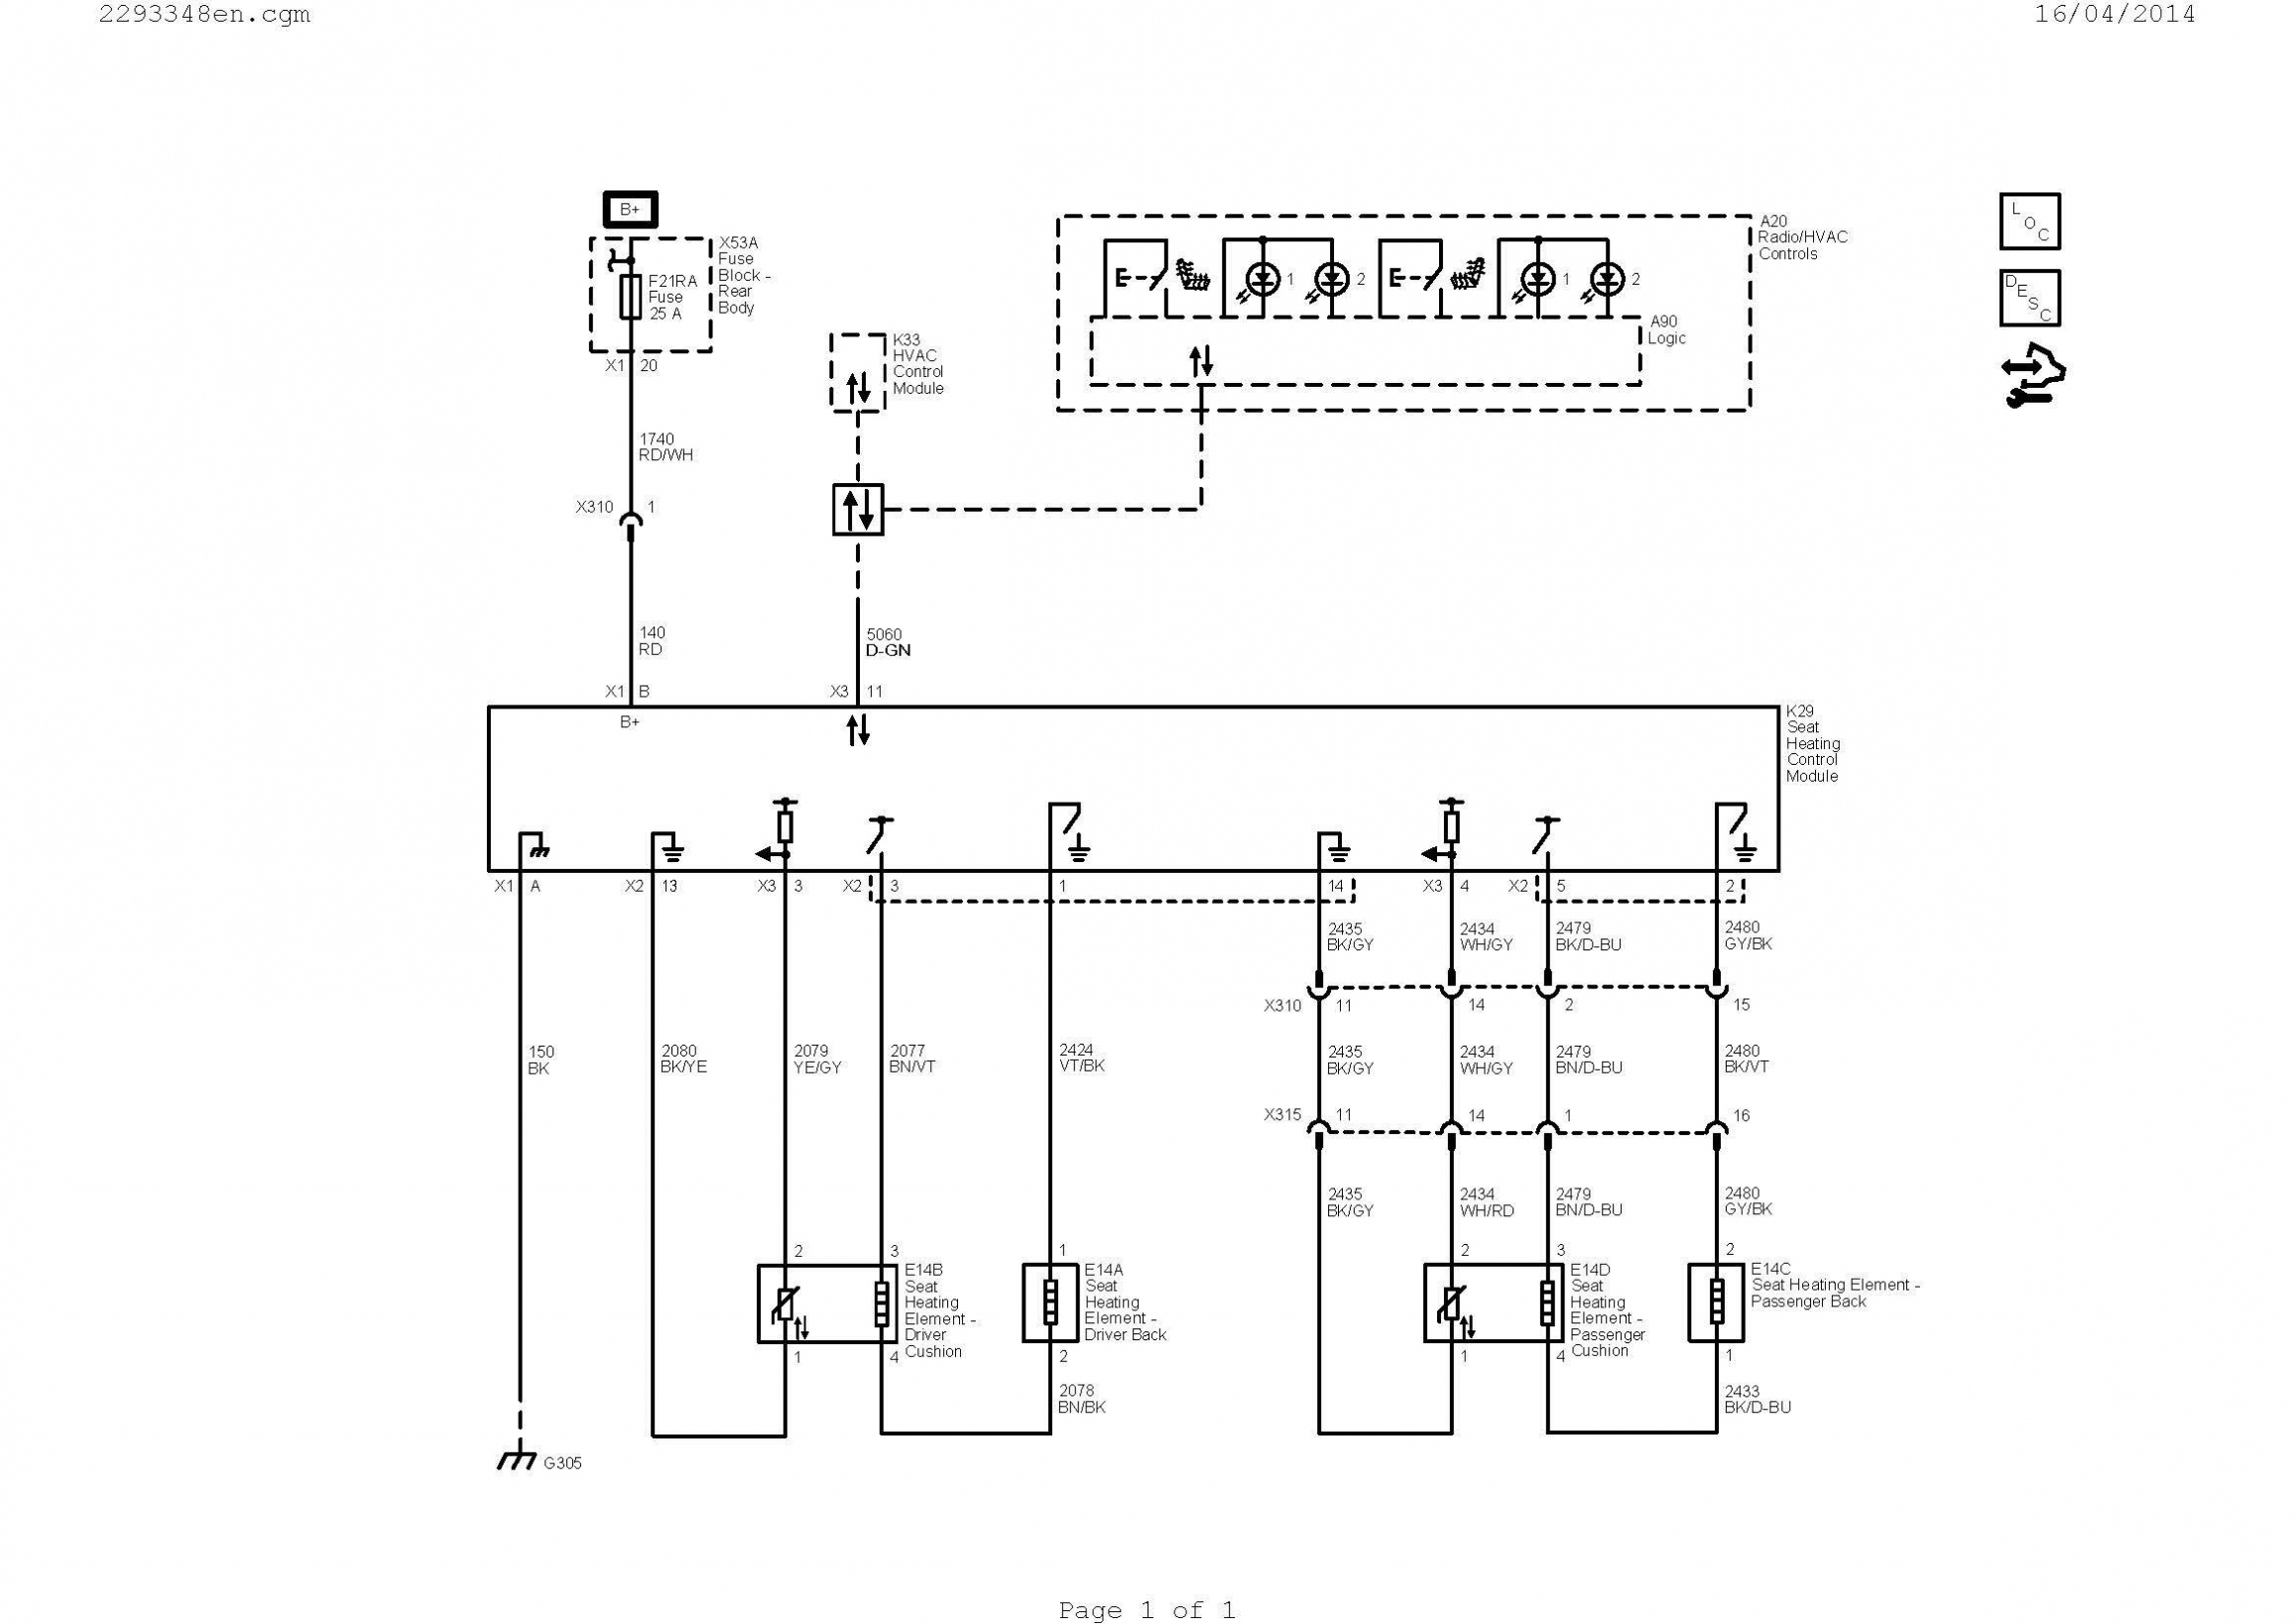 Thermostat Wiring Diagrams For Wireless | Wiring Diagram - Nest Thermostat Heat Pump Wiring Diagram